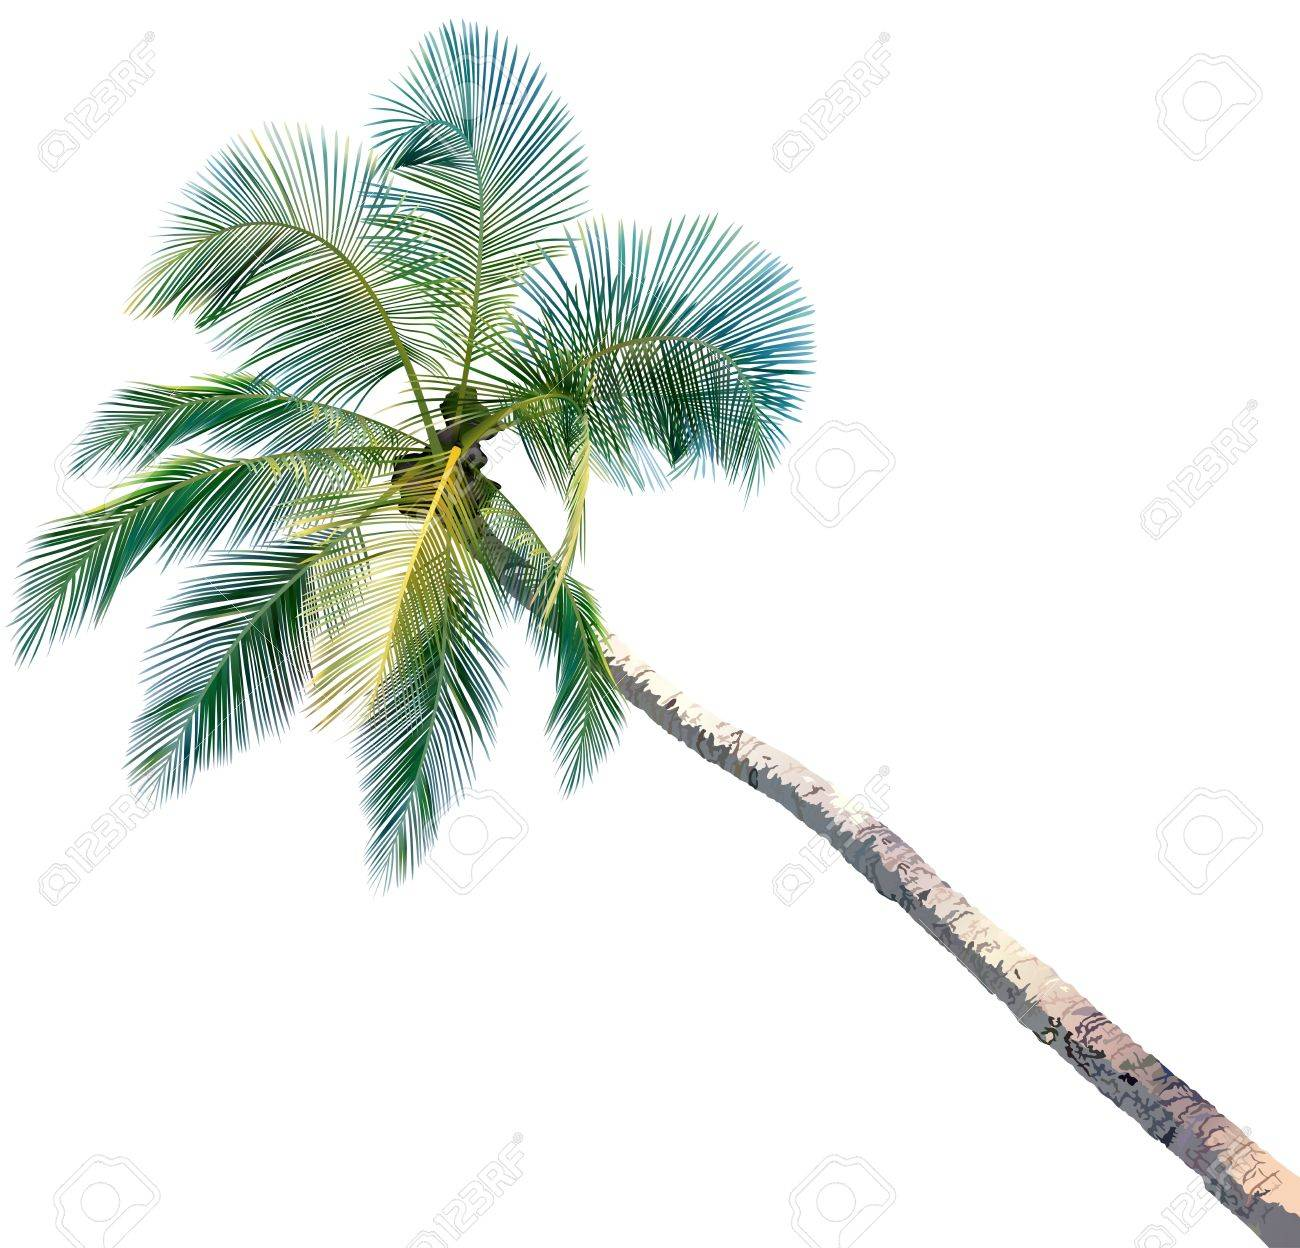 Palm Tree - colored and detailed illustration, vector Stock Vector - 12868239